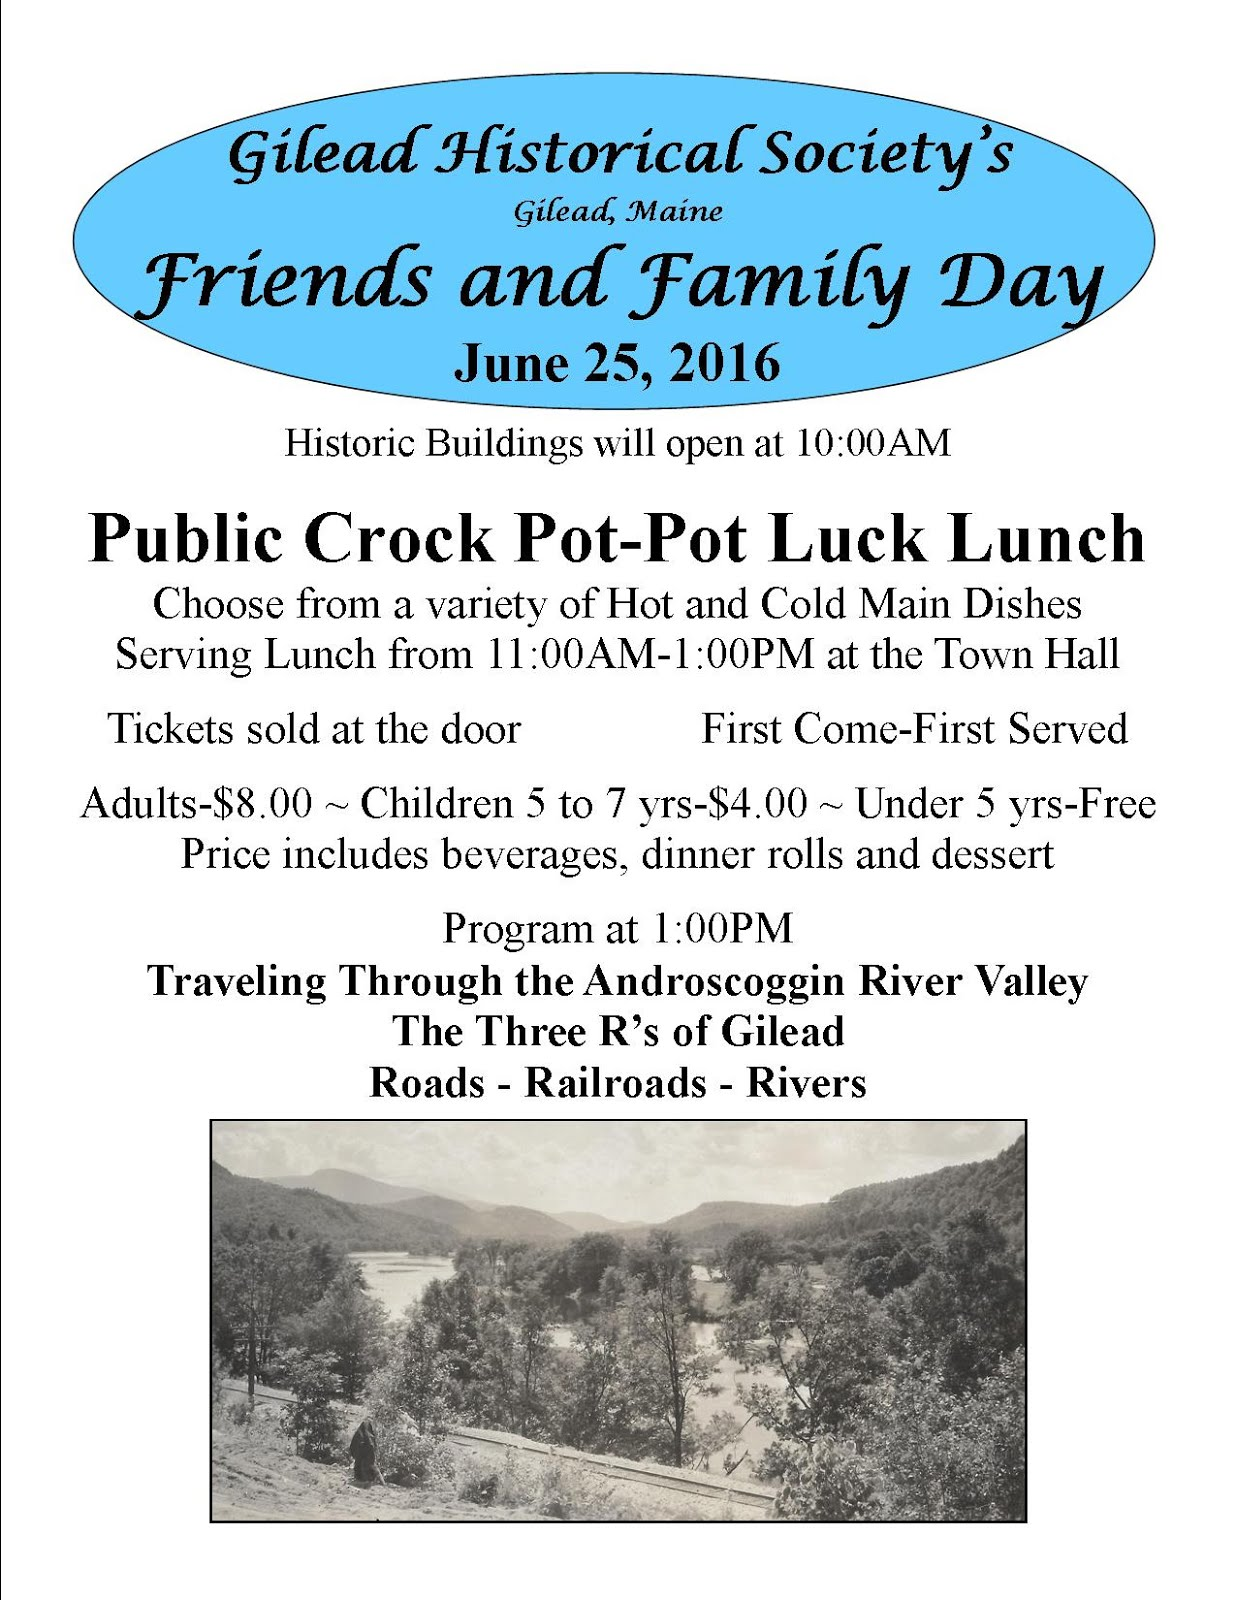 2016 Friends and Family Day